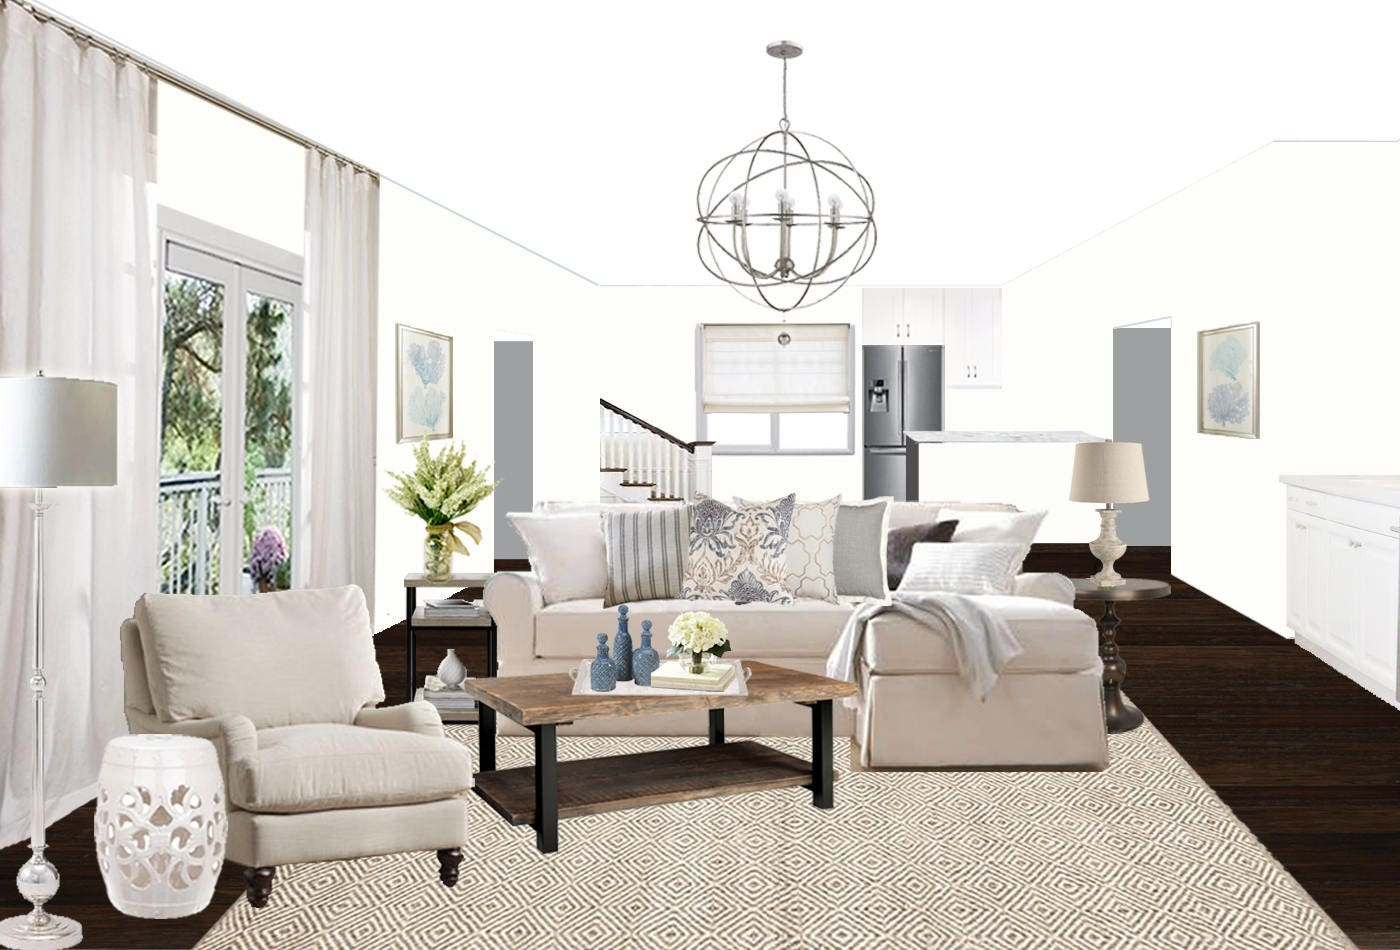 Transitional Living Room Designs Neutral Living Room Designs Coastal Rustic Living Room Designs